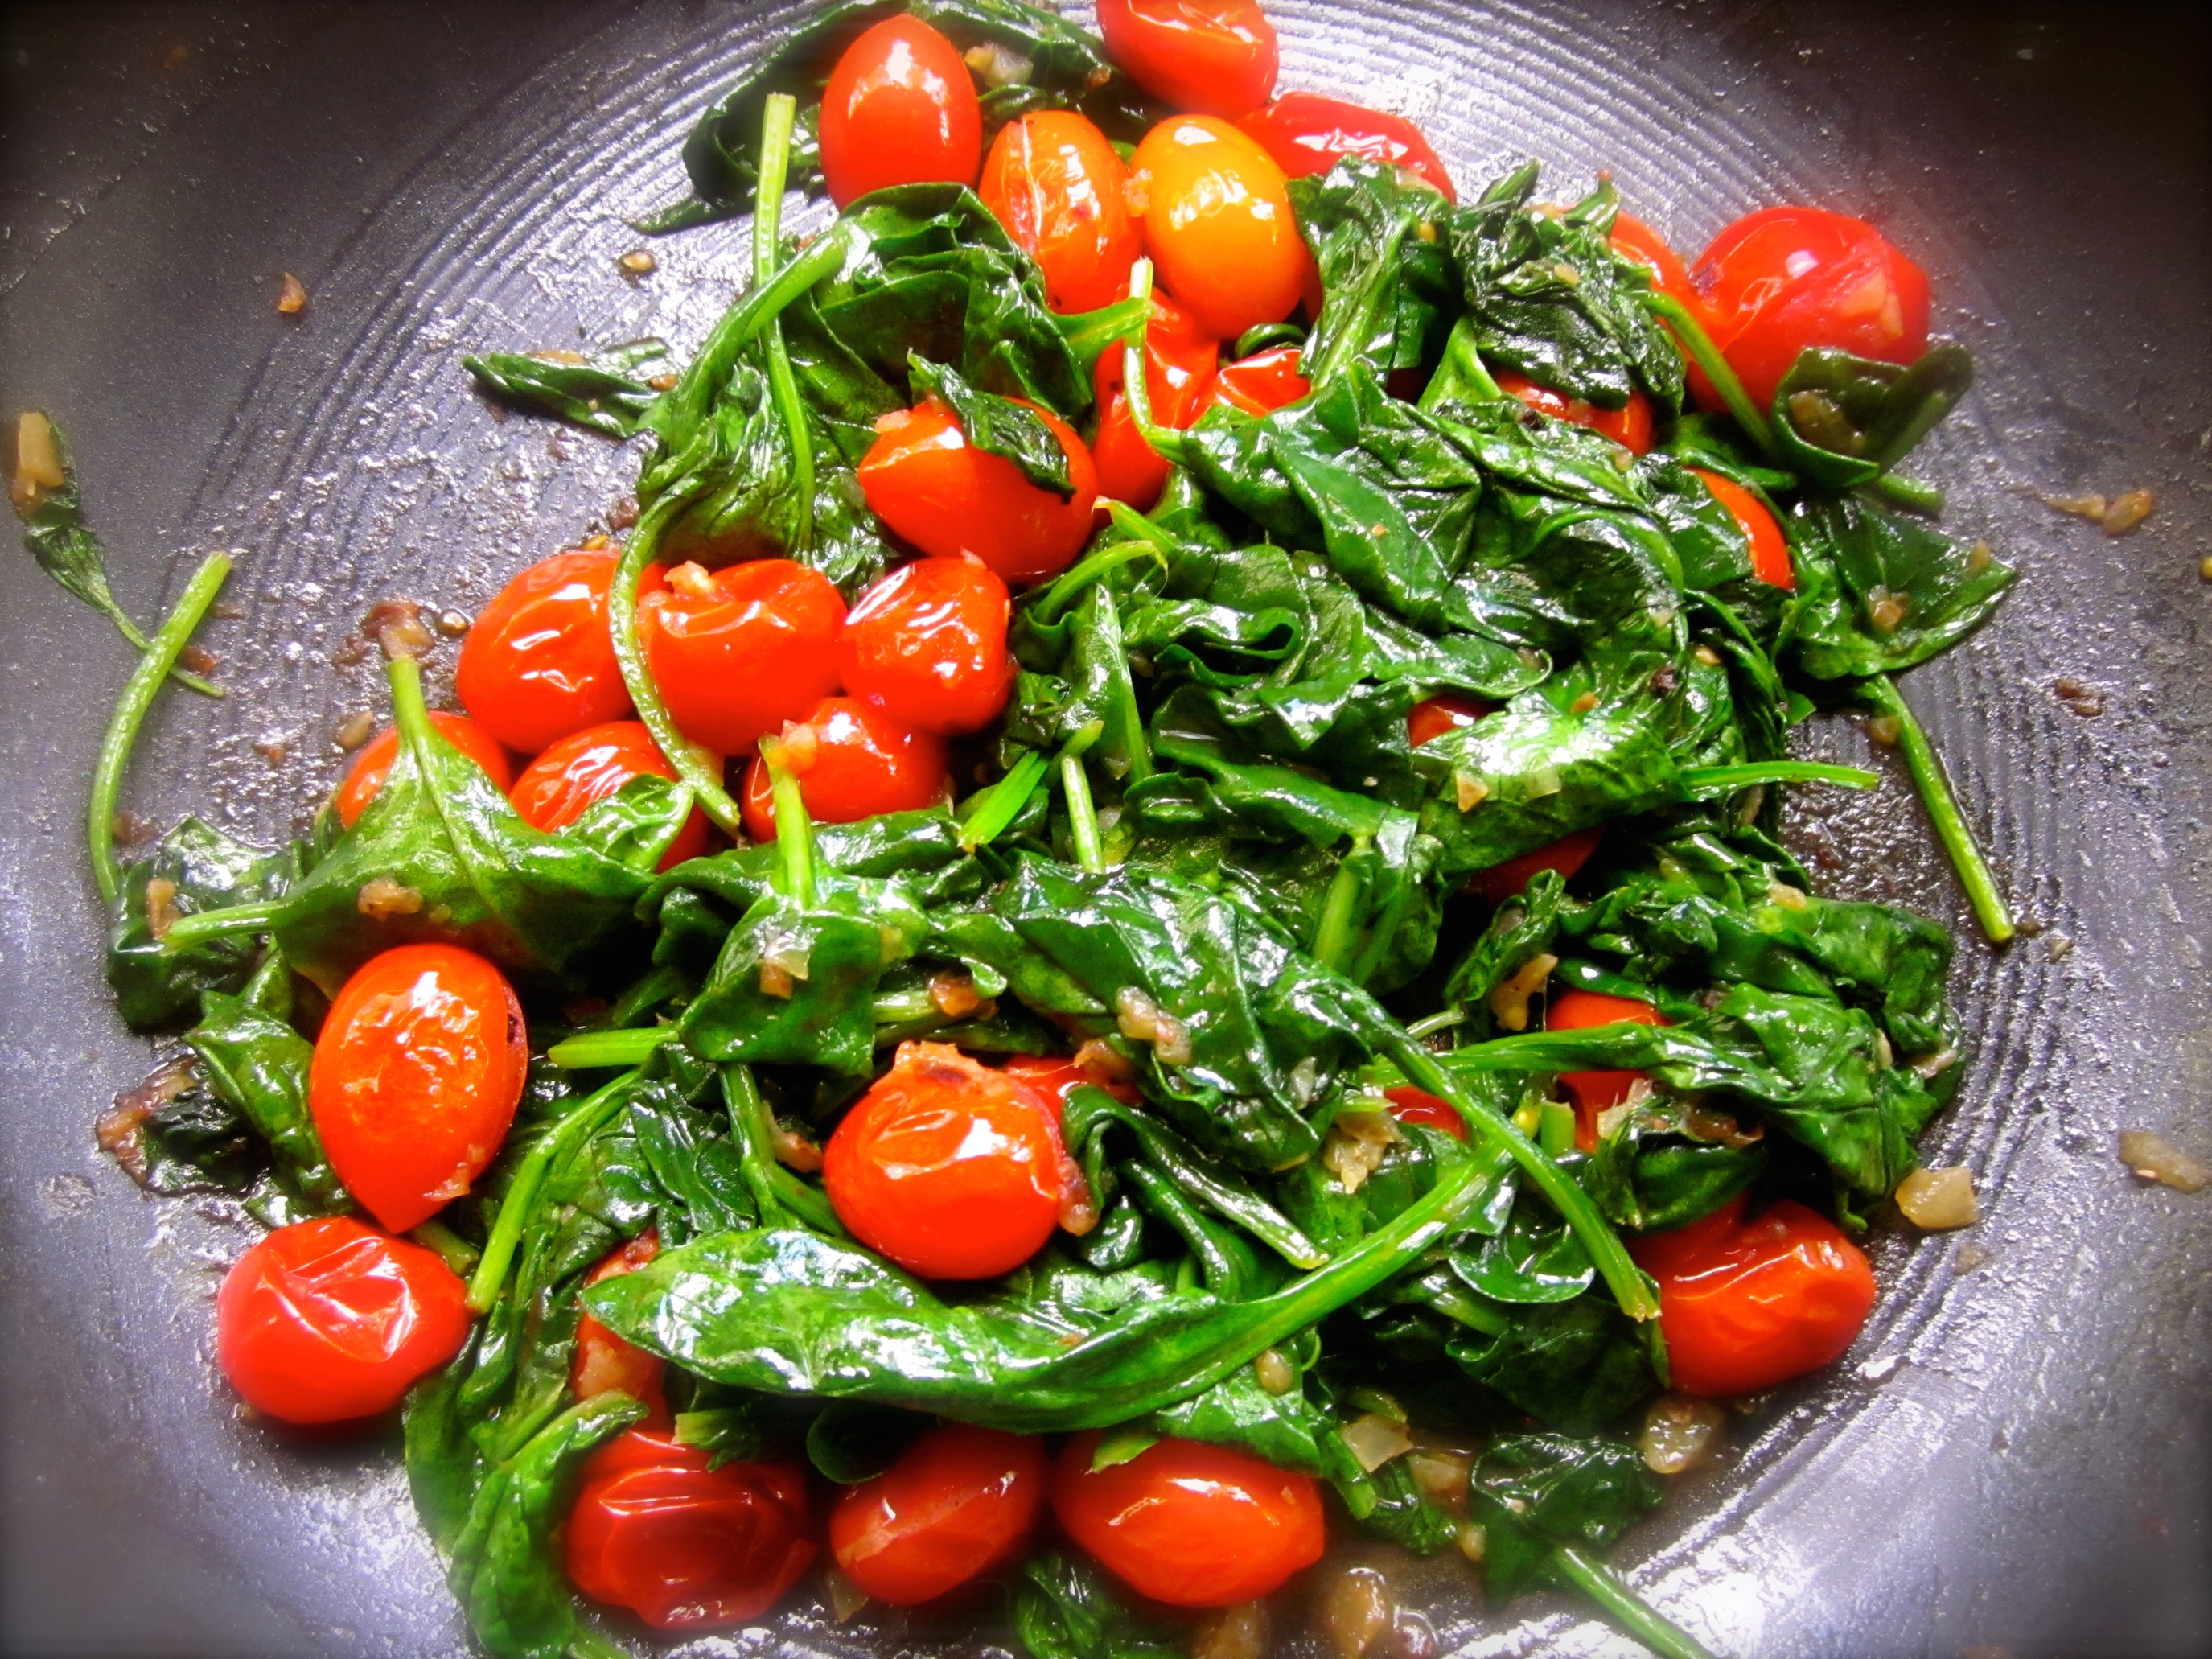 Sauteed spinach and tomatoes made a perfect p